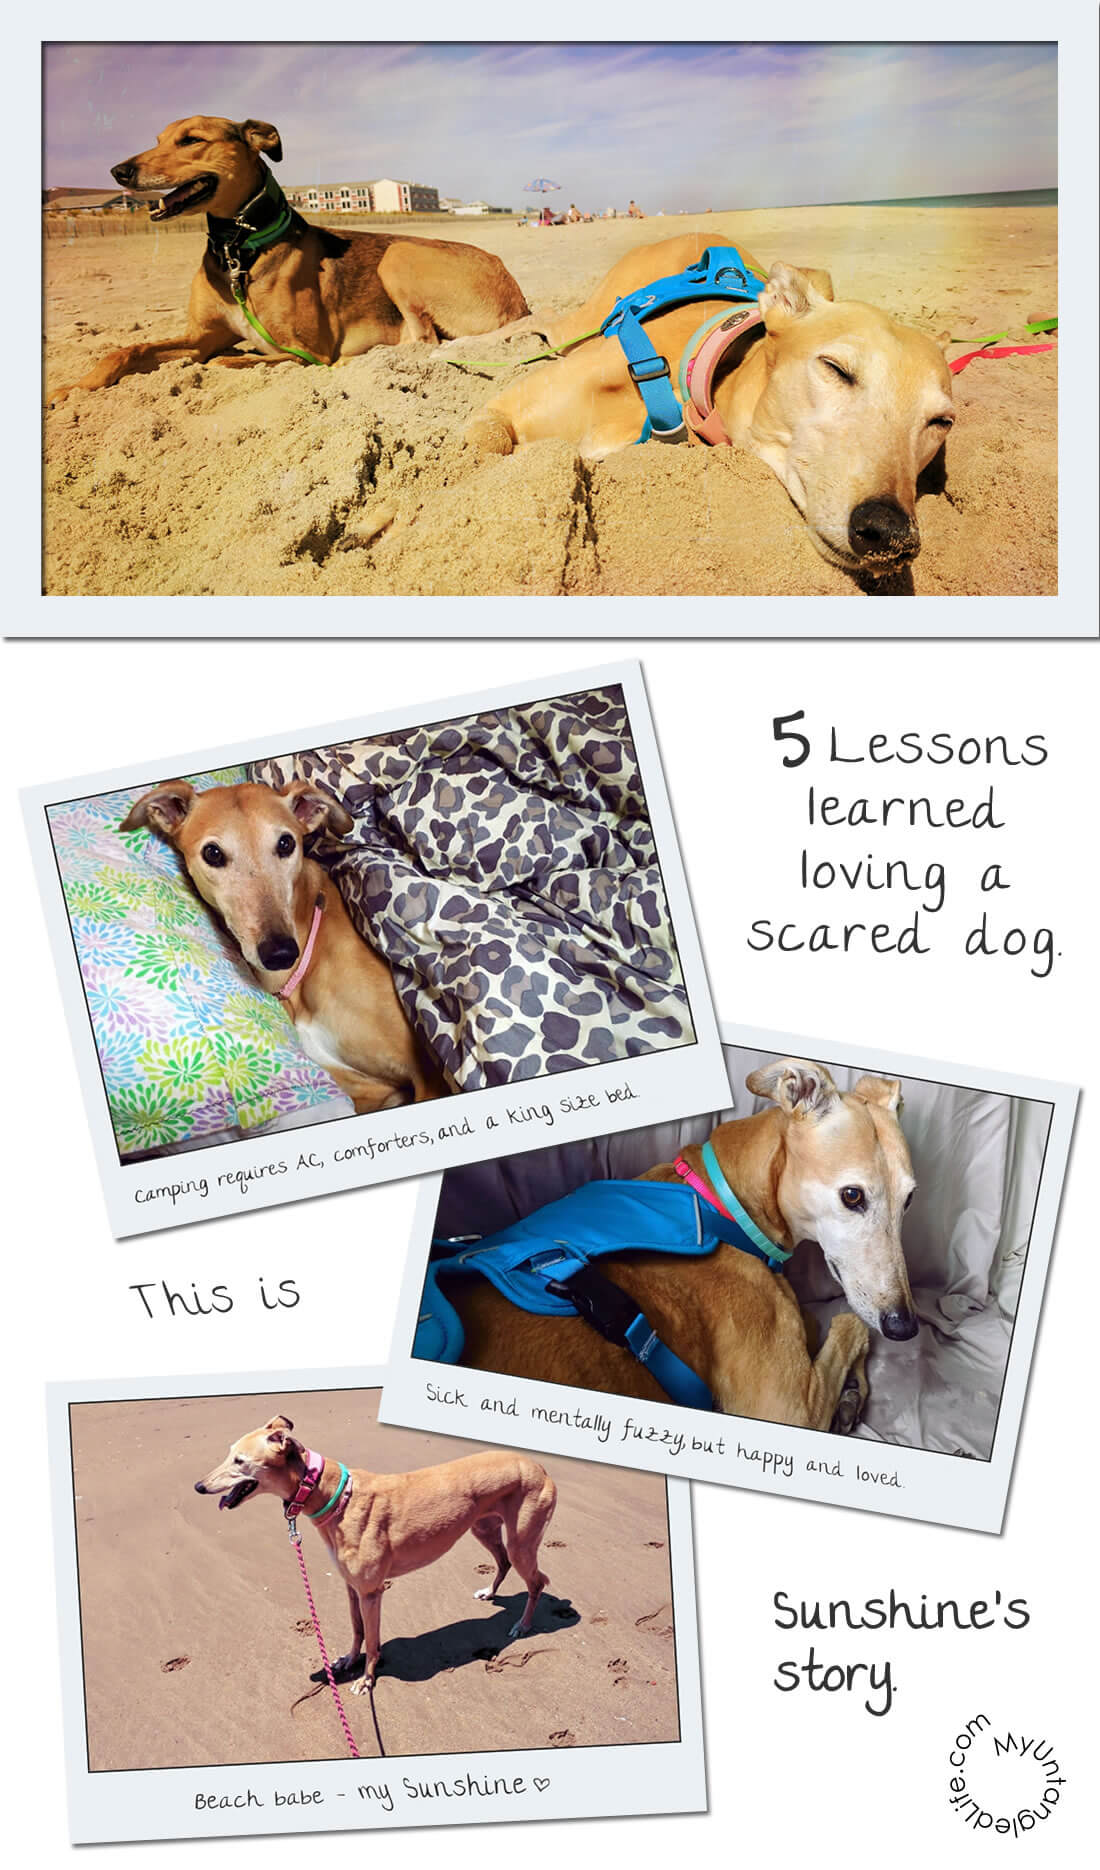 5 Hard Mommy Lessons Learned from a Scared Greyhound - How to Care for a Fearful #Dog